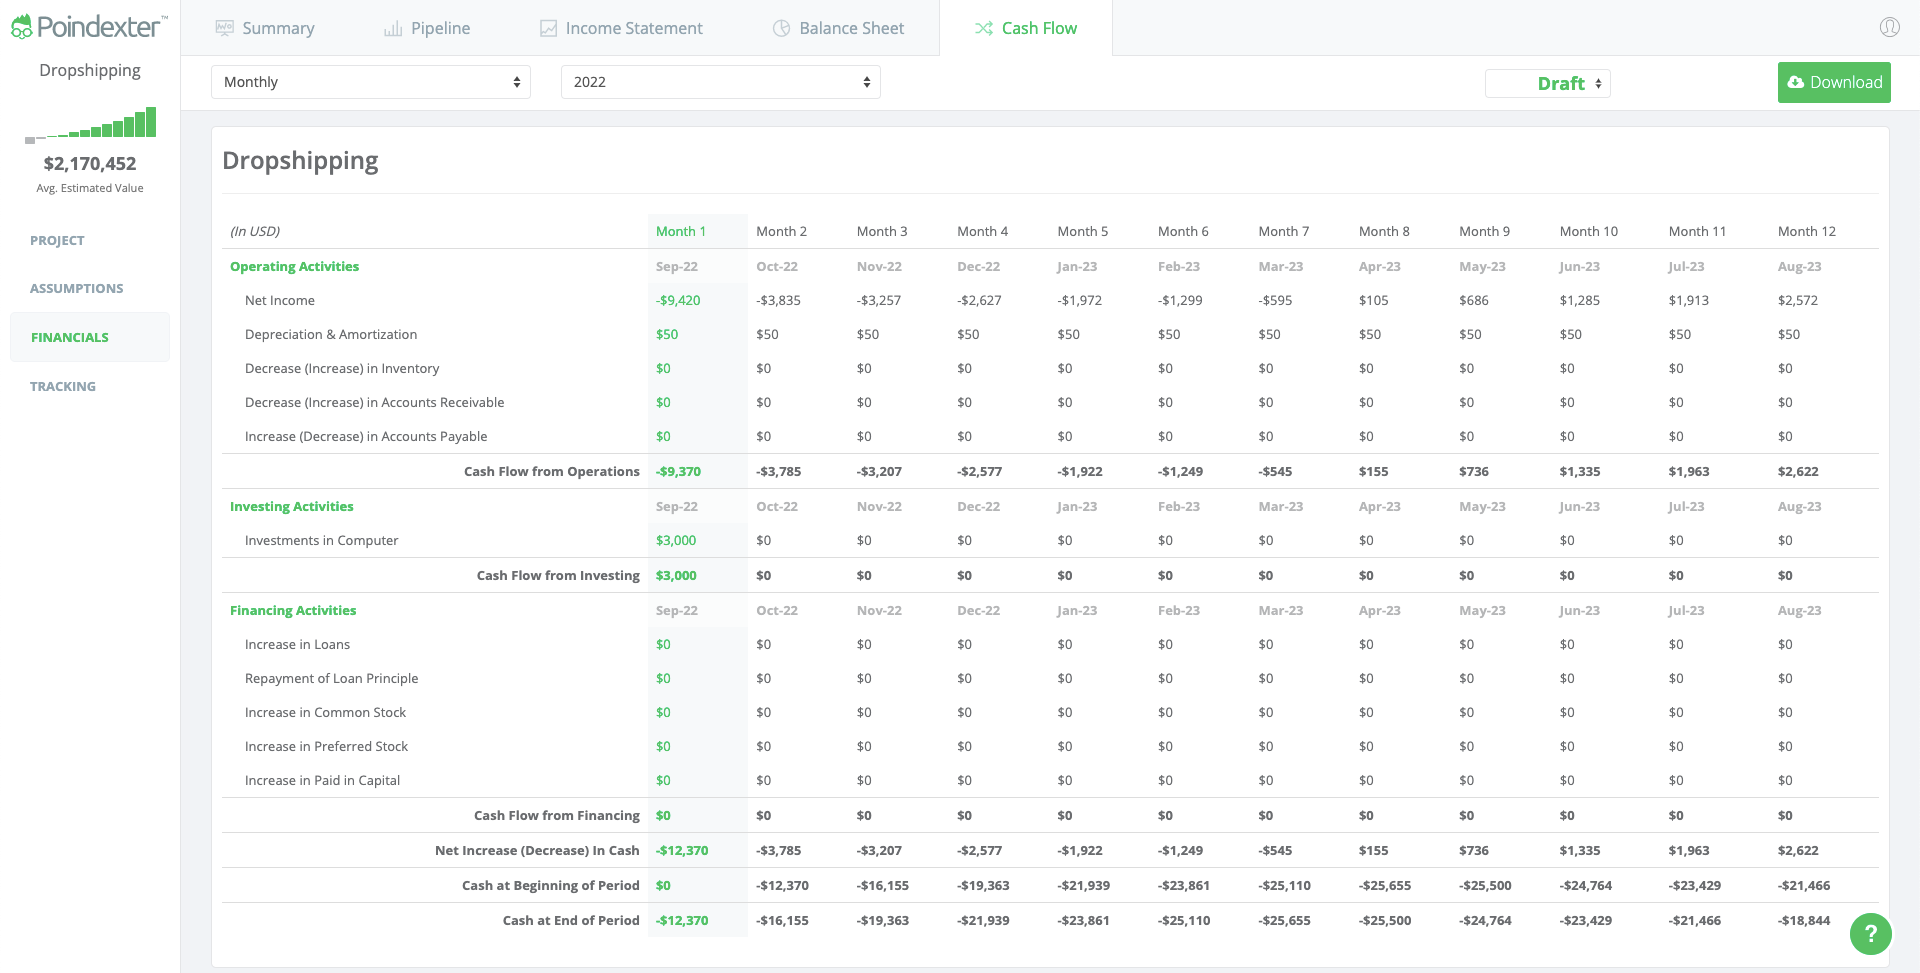 Dropshipping Pro Forma Cash Flow Statement